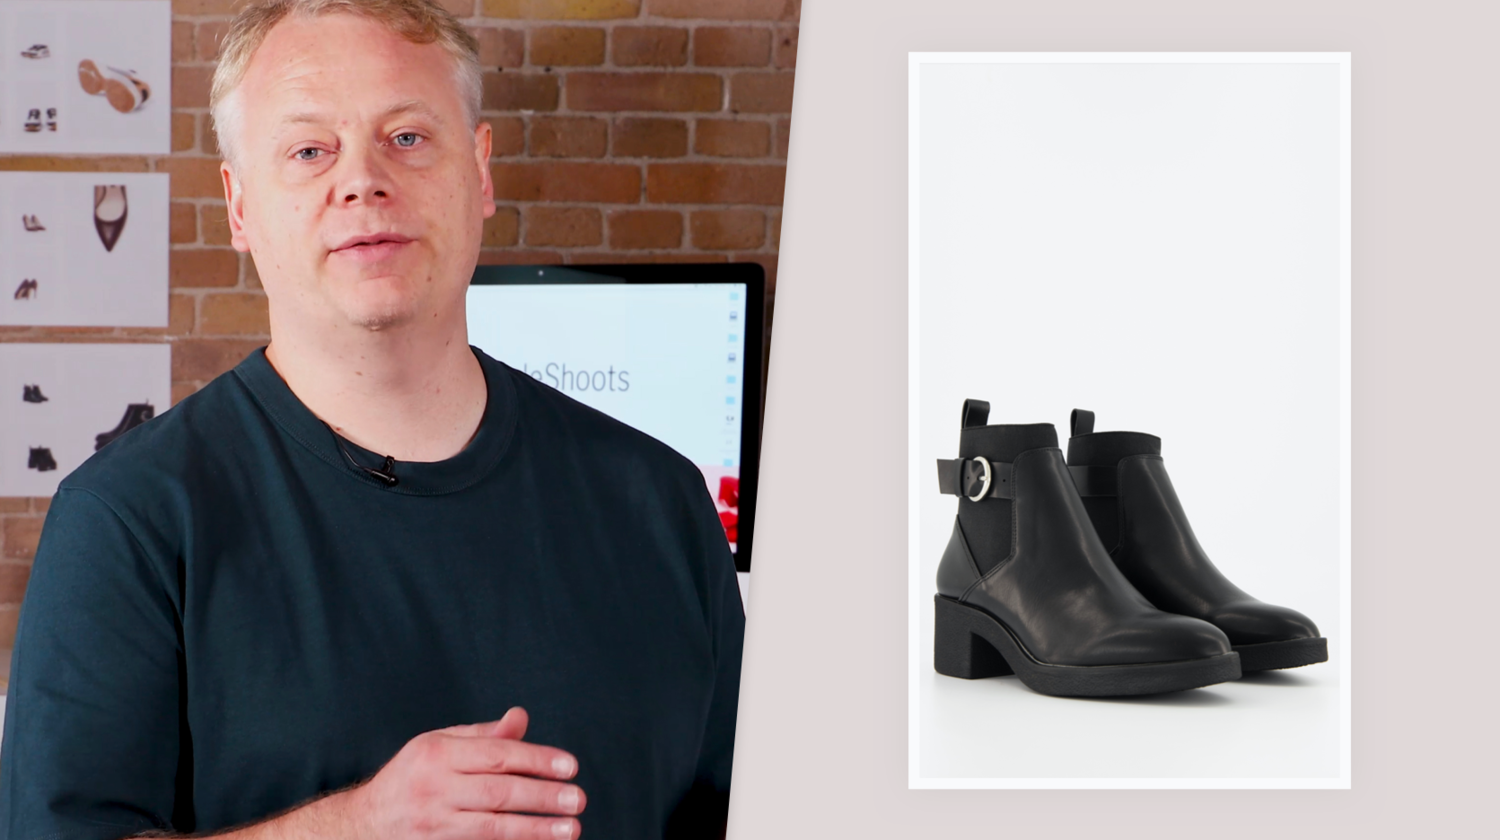 5 Essential Tips For Footwear Photo Shoots Styleshoots Fashion Product Photography Equipment